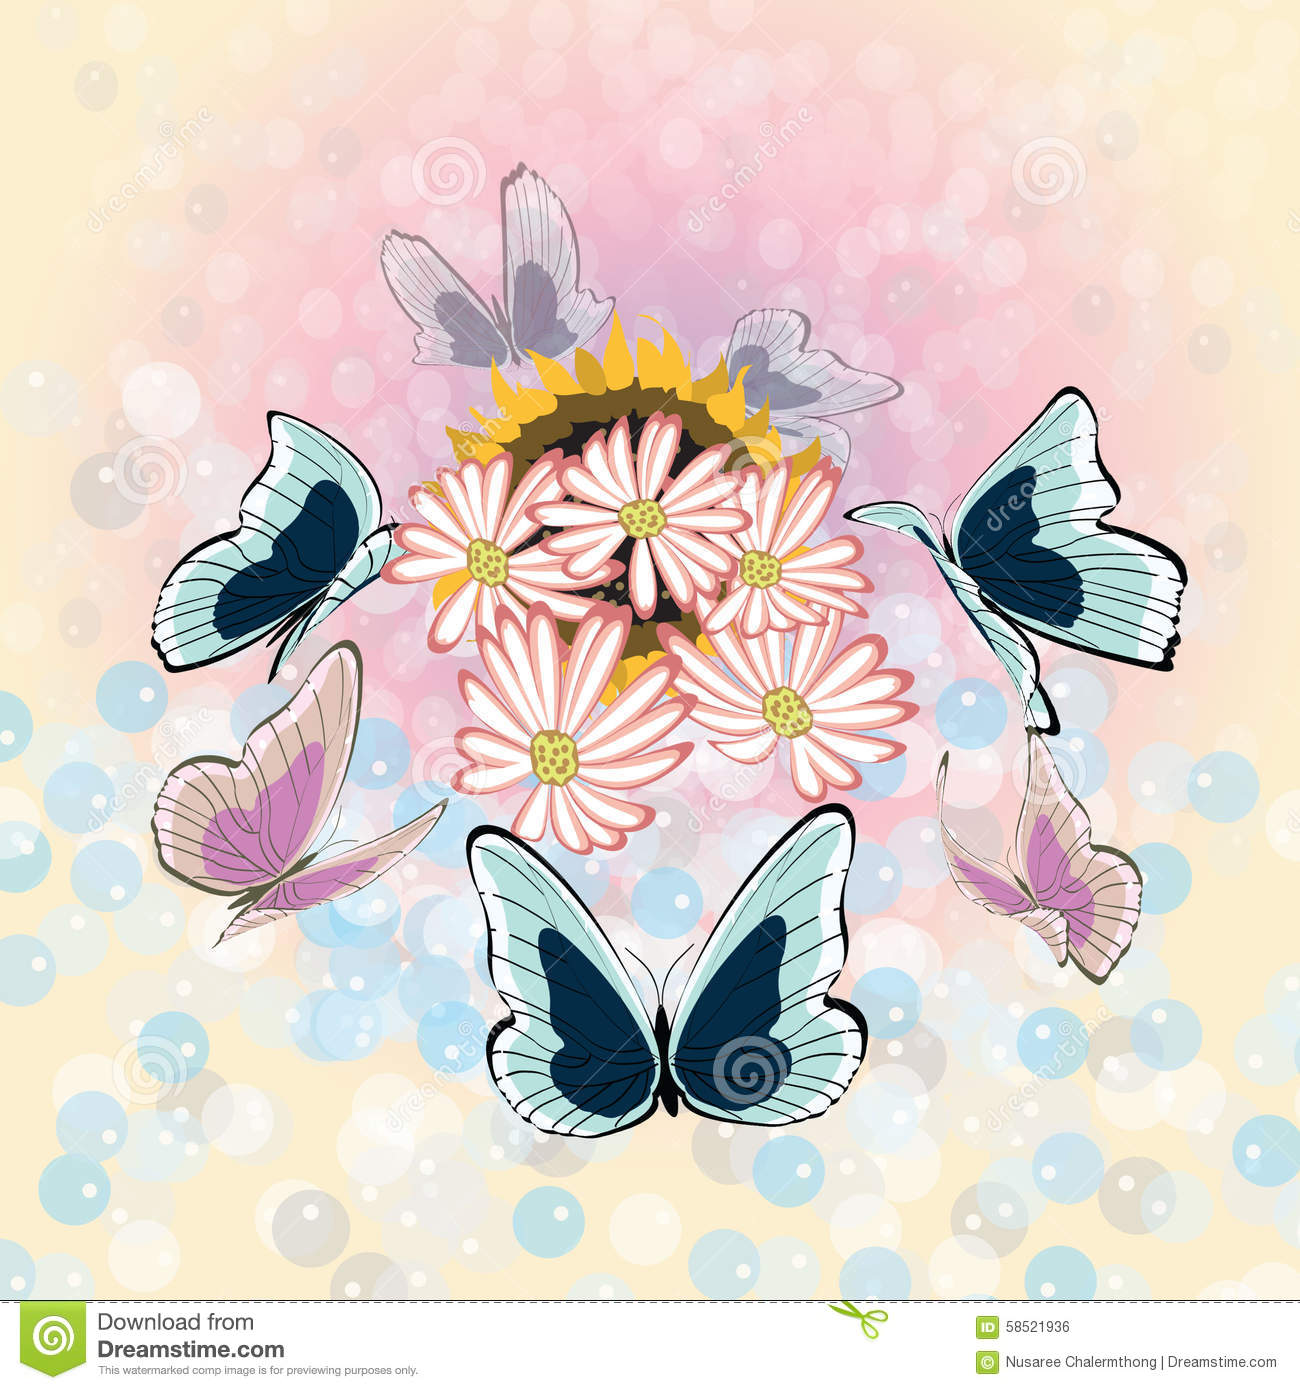 Book Cover Design Flower : Flower and butterfly background stock illustration image